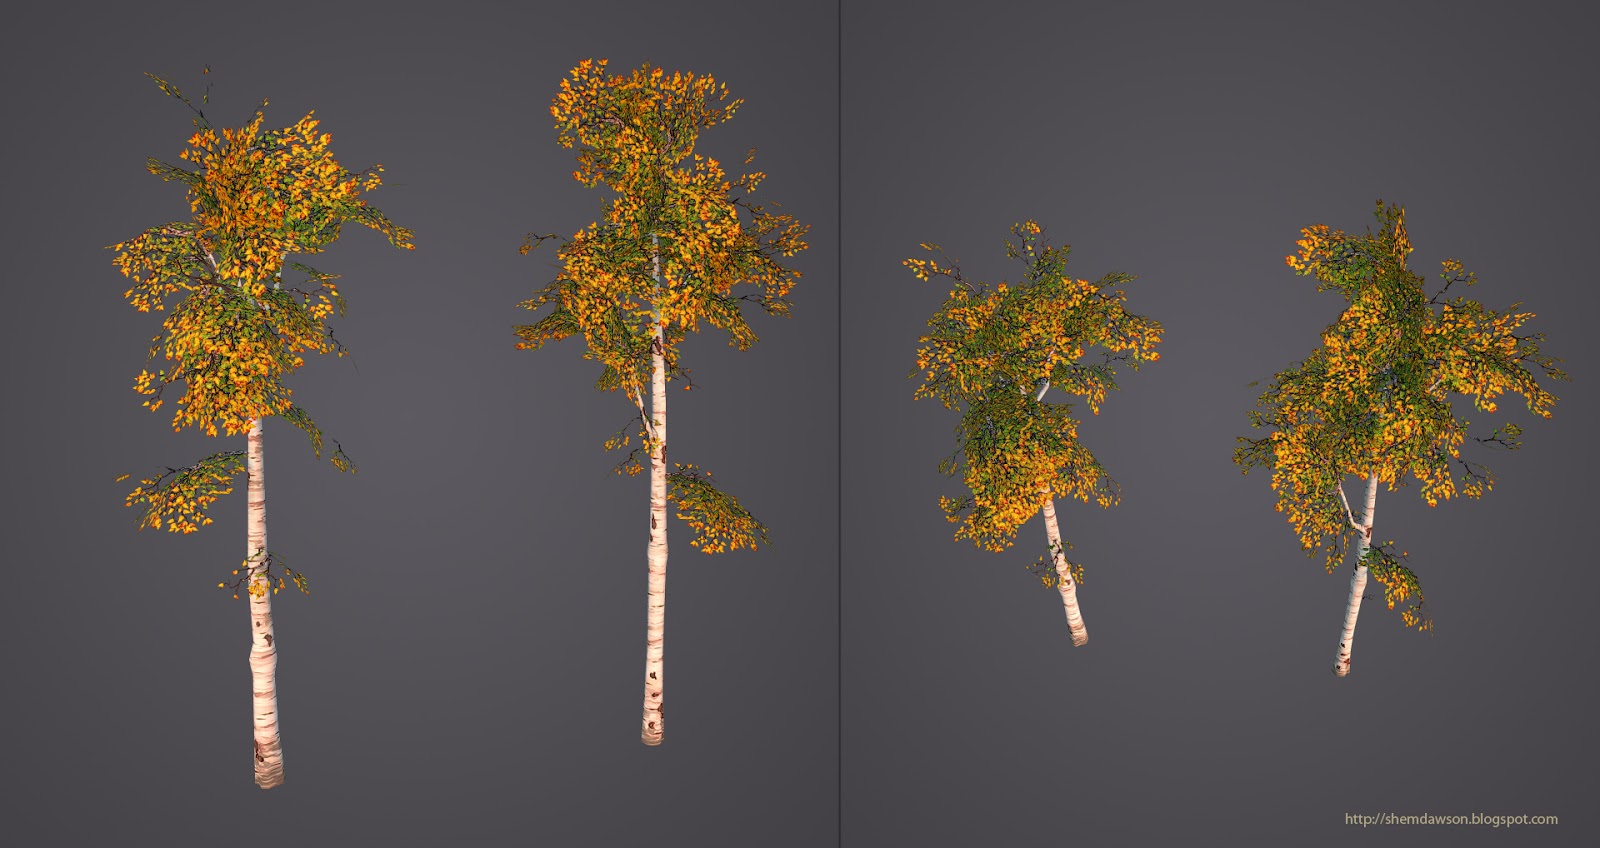 The Art Of Shem Dawson: Painted Low Poly Pine Trees